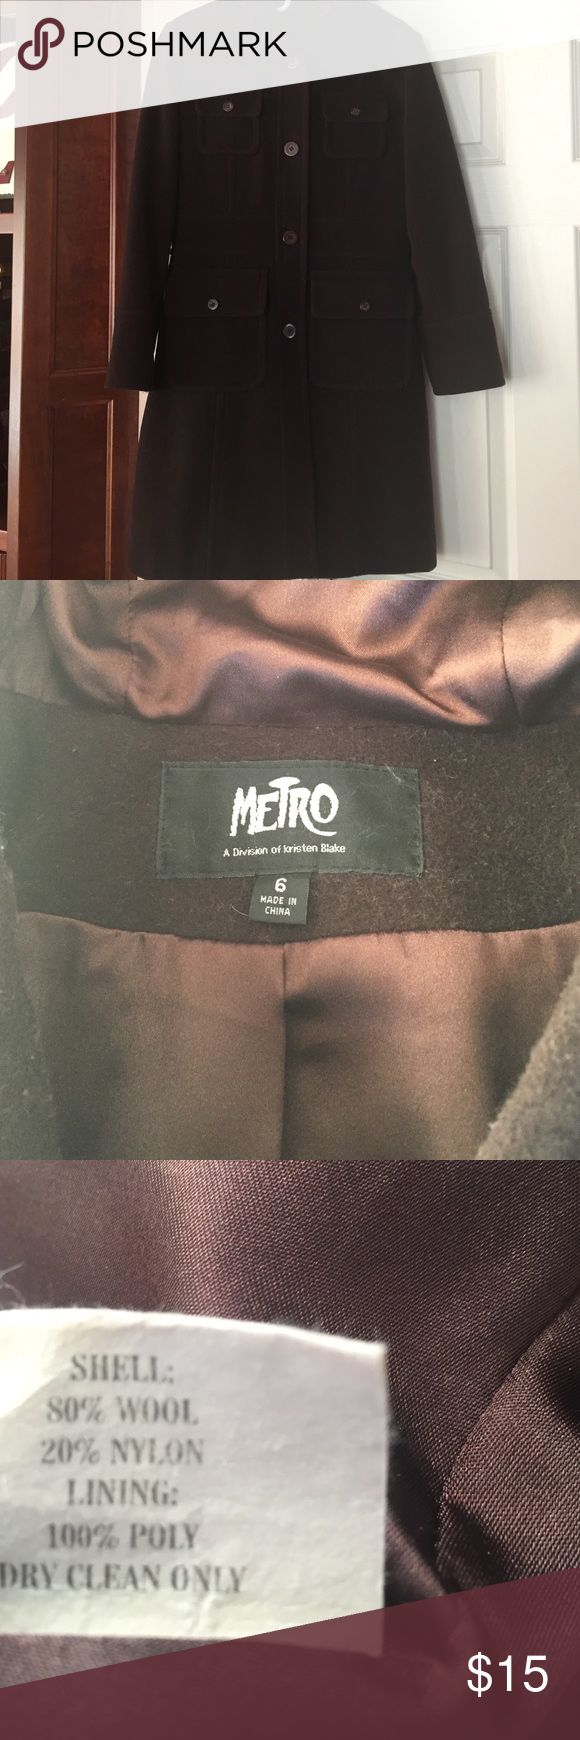 Brown wool long coat. Size 6. Cute brown wool coat with hood. Size 6. Good condition. Some minor signs of wear with some pilling but not noticeable on. Dry clean only. It has been stored in a cedar lined closet to preserve but could use a dry cleaning. Metro Jackets & Coats